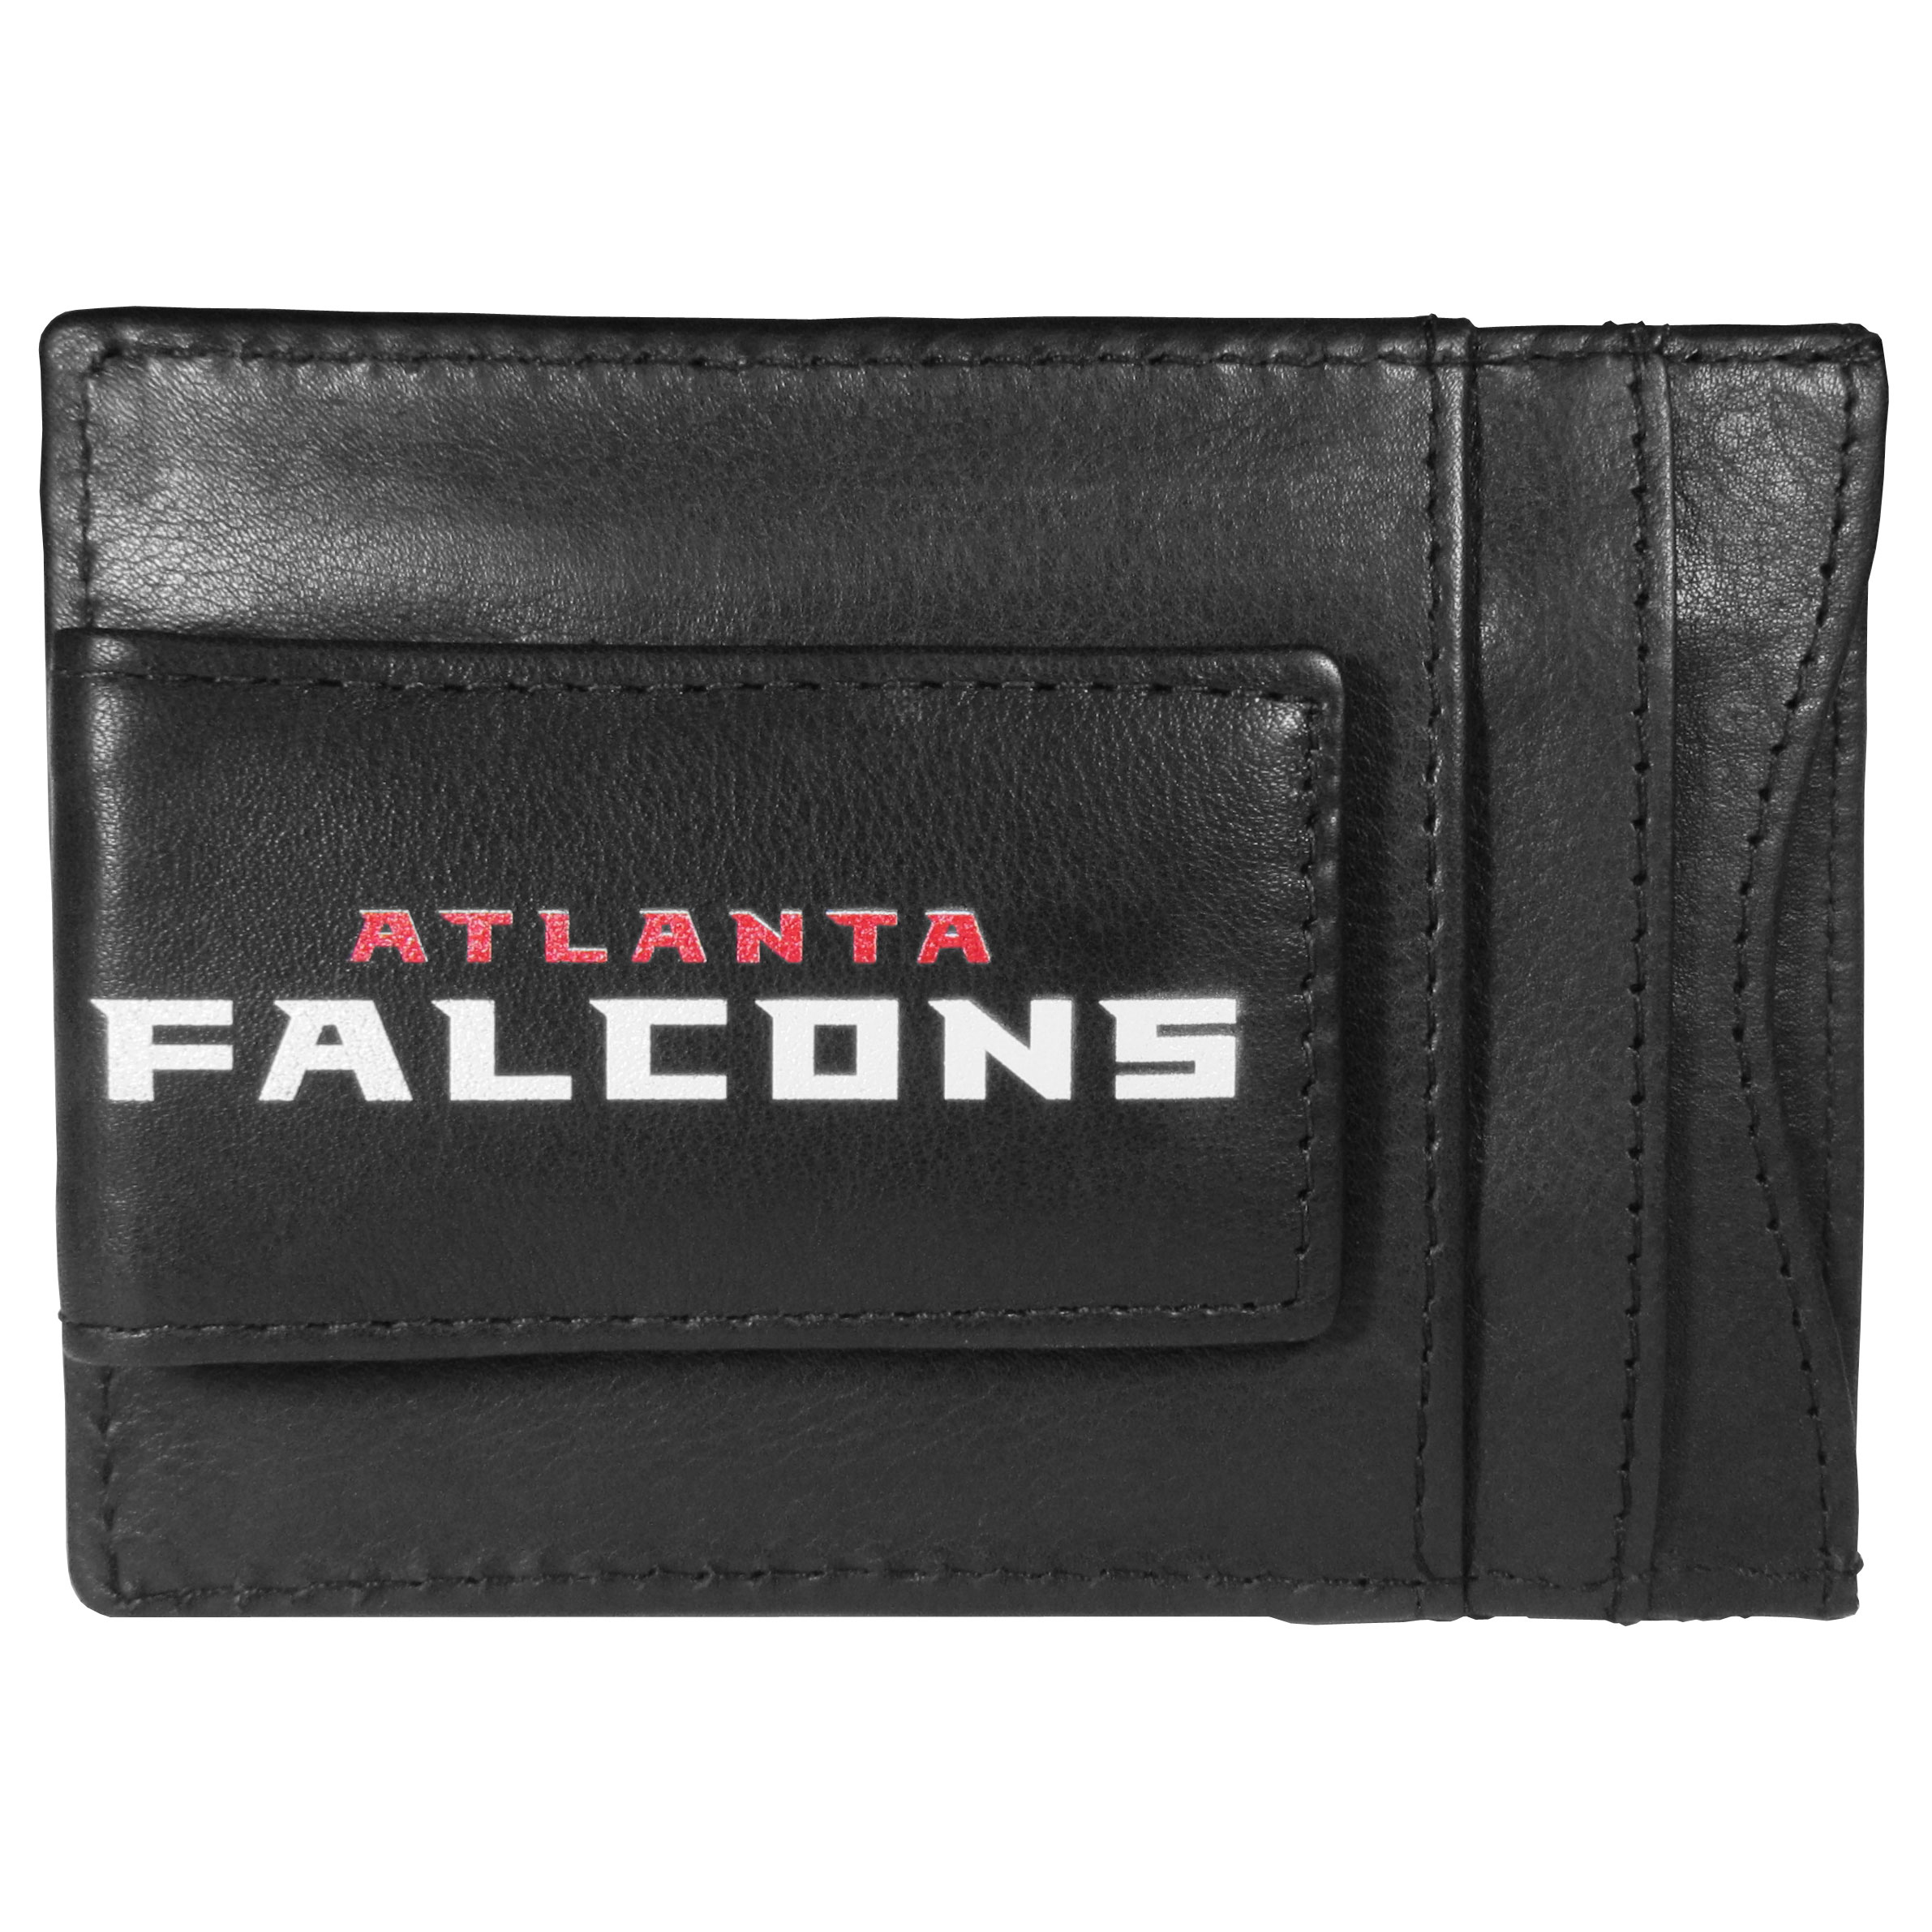 Atlanta Falcons Logo Leather Cash and Cardholder - This super slim leather wallet lets you have all the benefits of a money clip while keeping the organization of a wallet. On one side of this front pocket wallet there is a strong, magnetic money clip to keep your cash easily accessible and the?Atlanta Falcons team logo on the front. The versatile men's accessory is a perfect addition to your fan apparel.